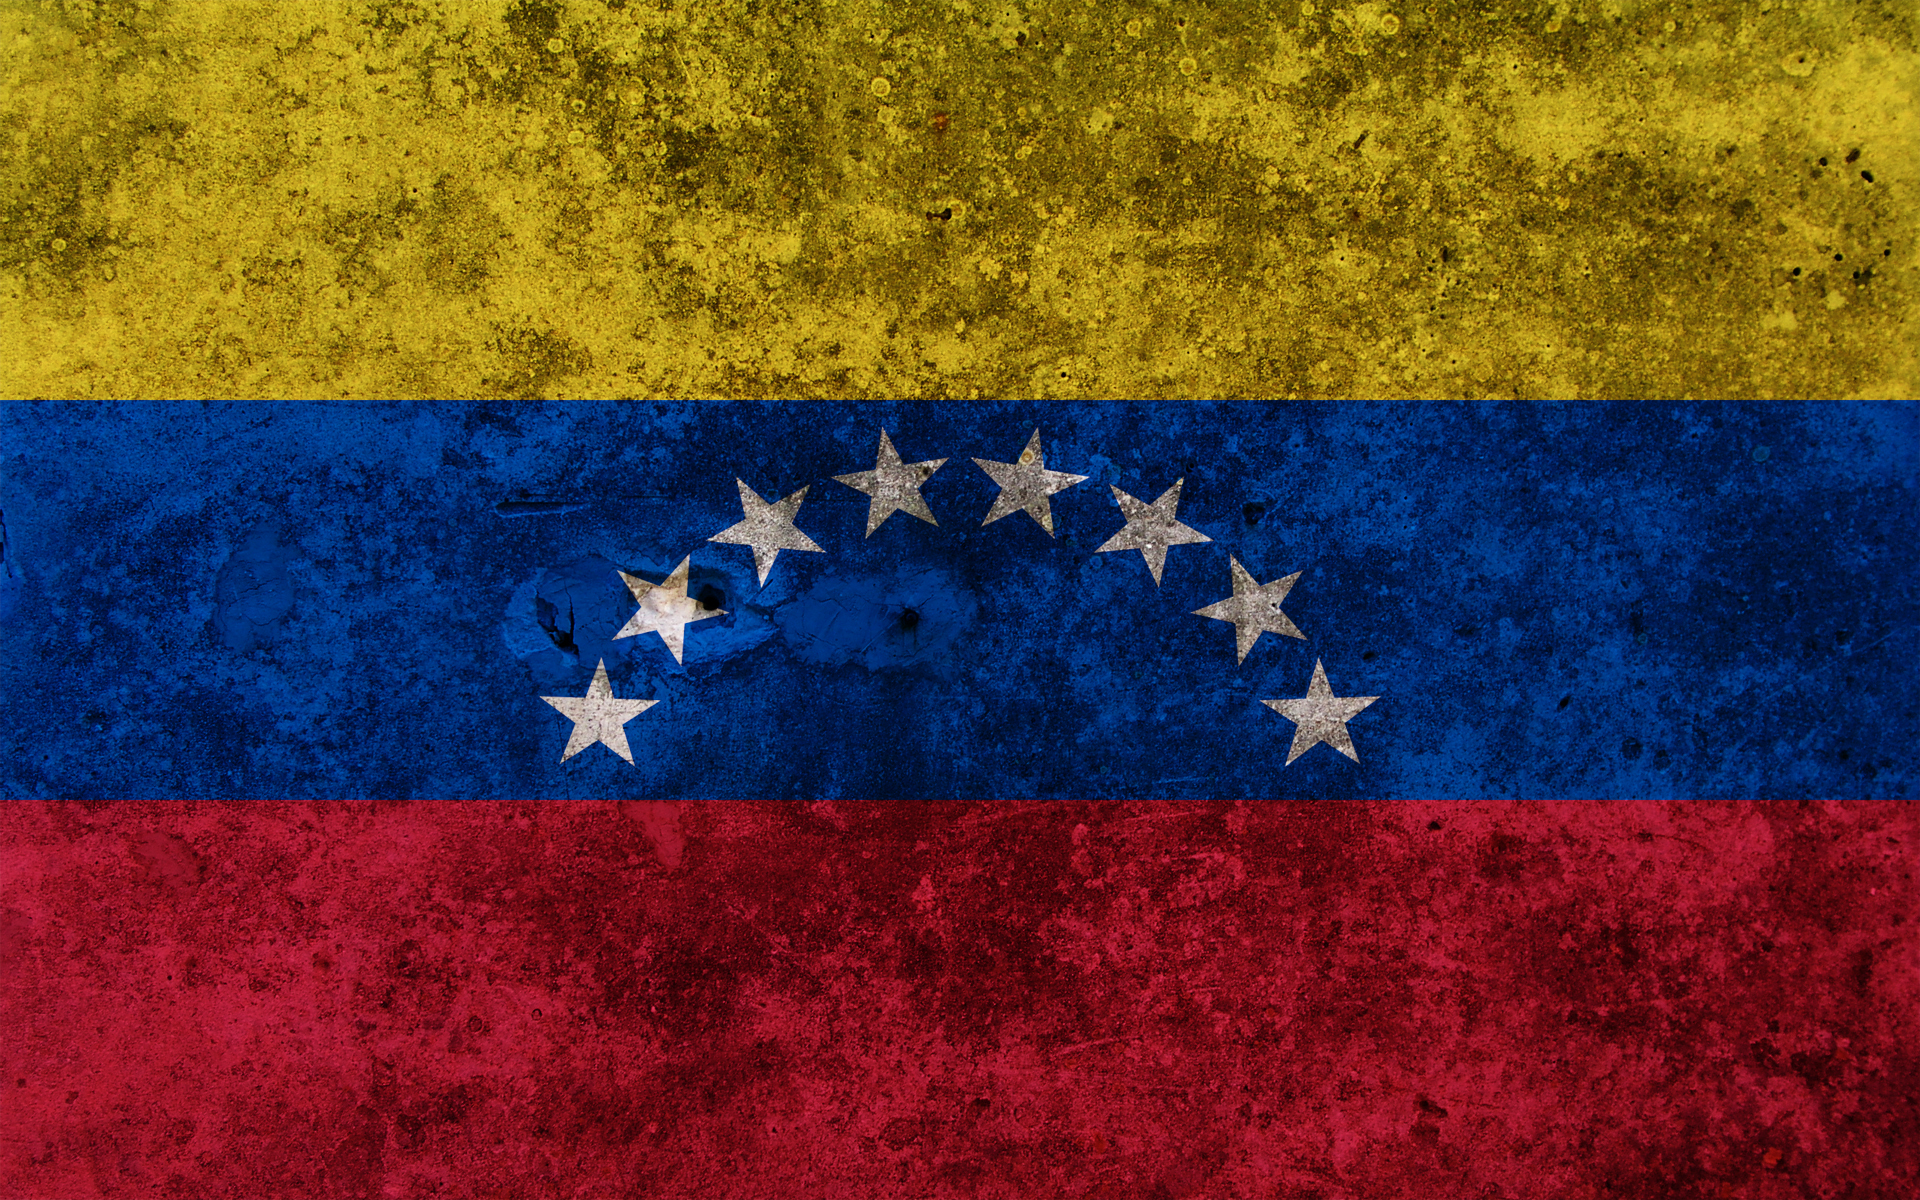 Flag Of Venezuela HD Wallpaper Background Image 1920x1200 ID 1920x1200